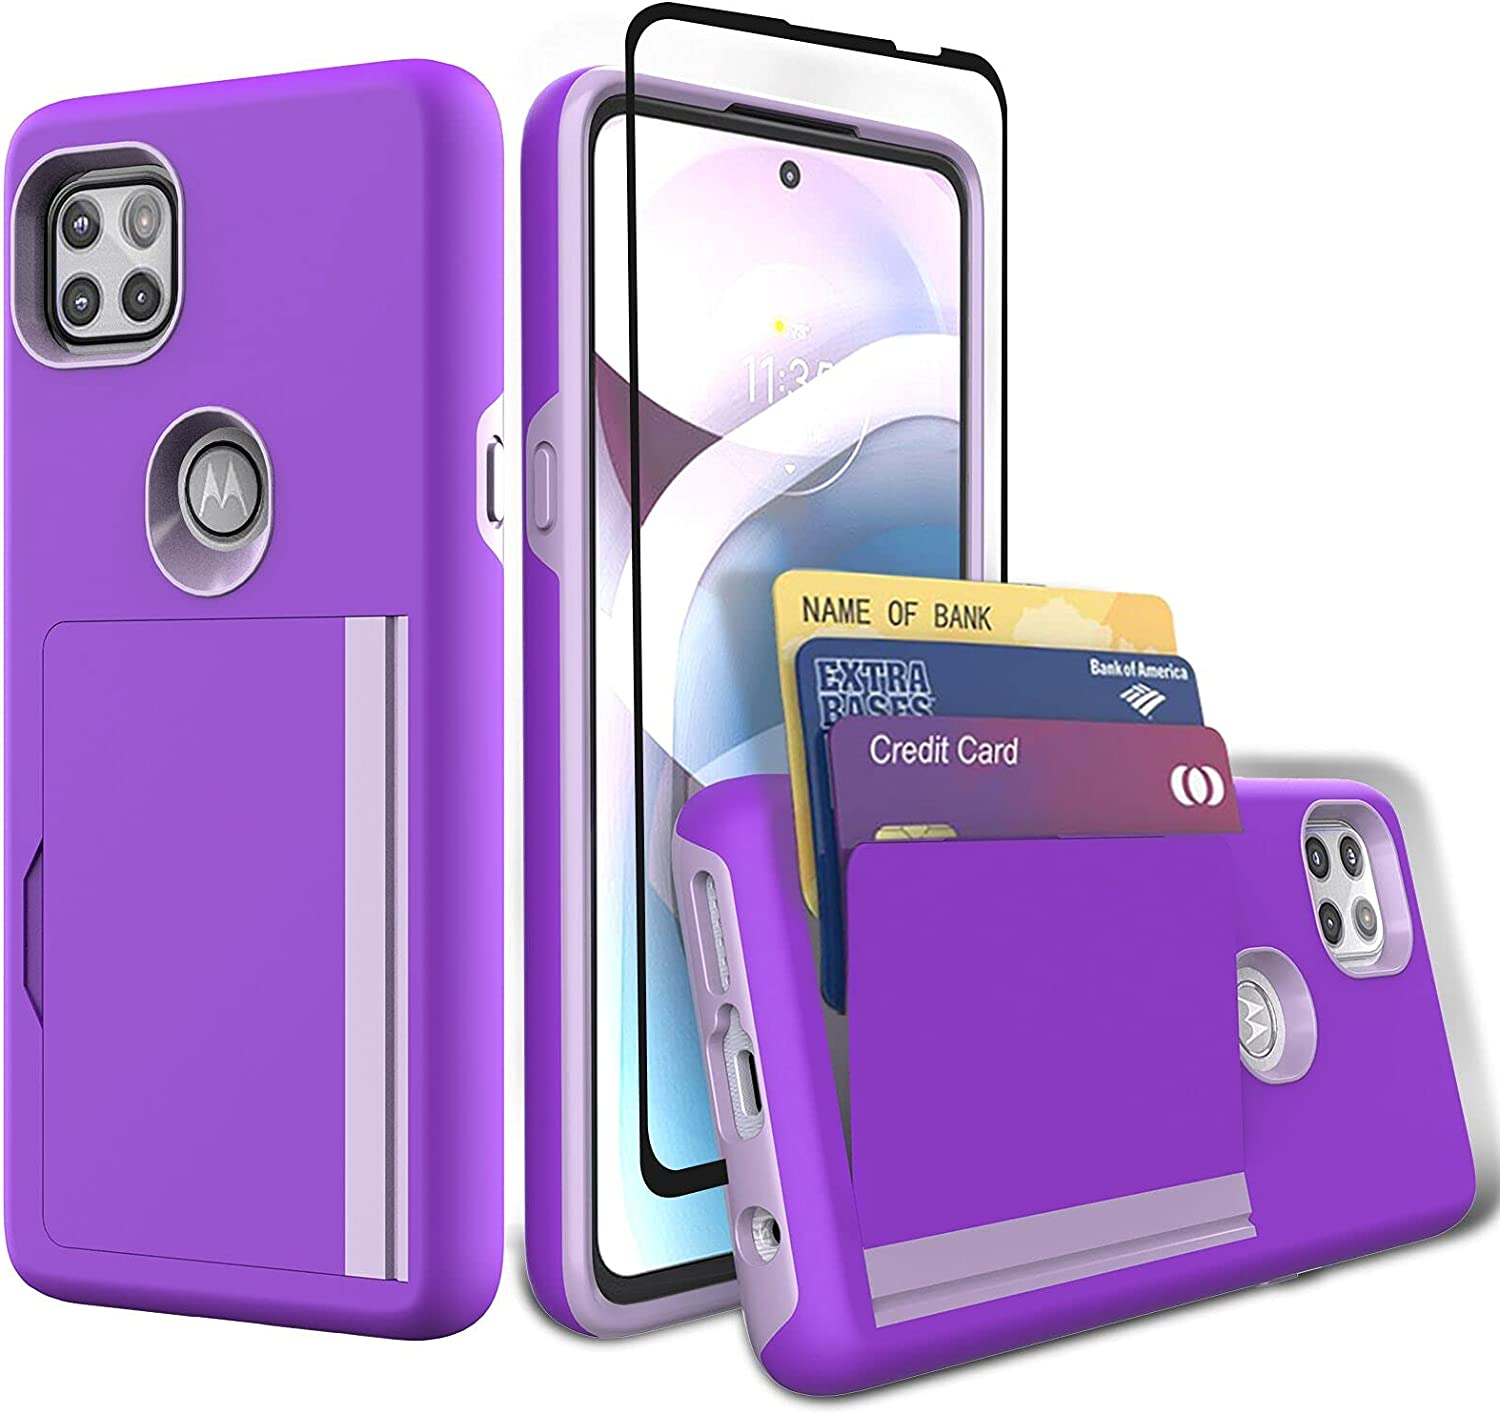 Sofiso for Moto One 5G Ace Case, Moto G 5G Case with Tempered Glass Screen Protector, Dual Layer Smooth Hard Back Cover Wallet Pocket Credit Card ID Protective Case for Motorola One 5G Ace -Purple